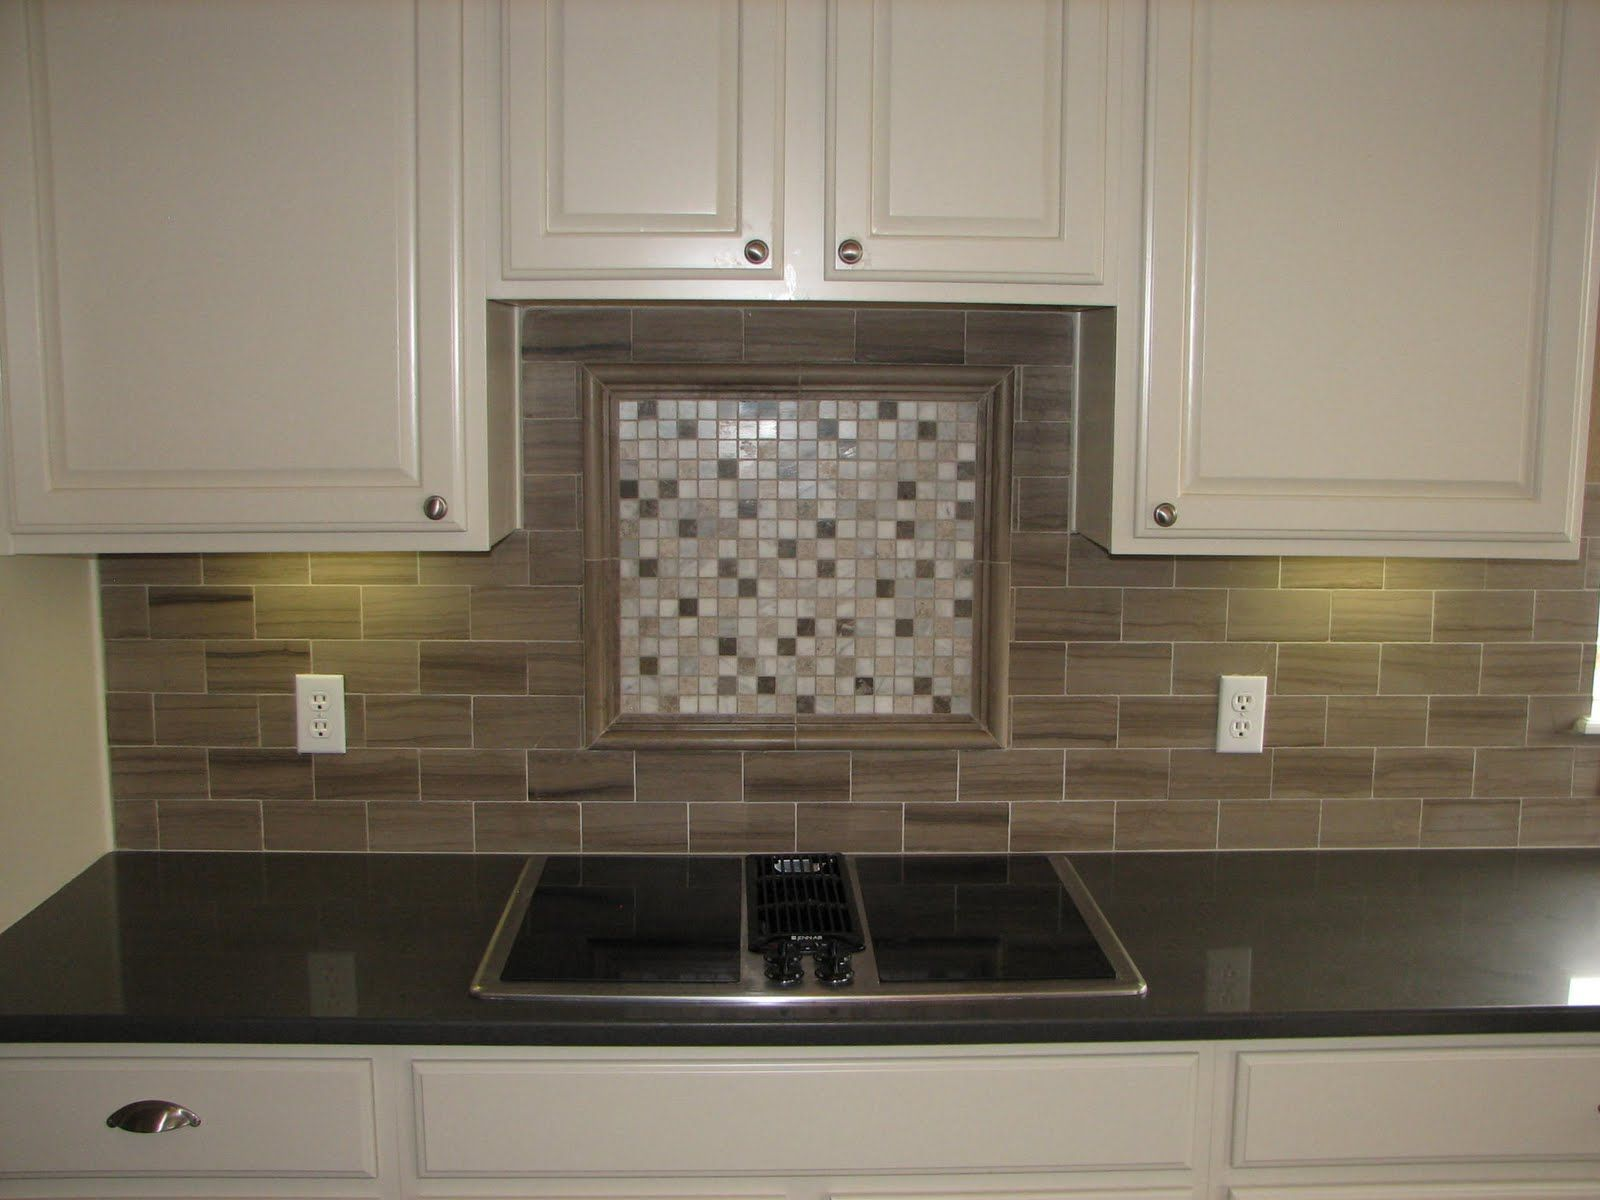 Tile Backsplash With Black Cuntertop Ideas Tile: mosaic kitchen wall tiles ideas